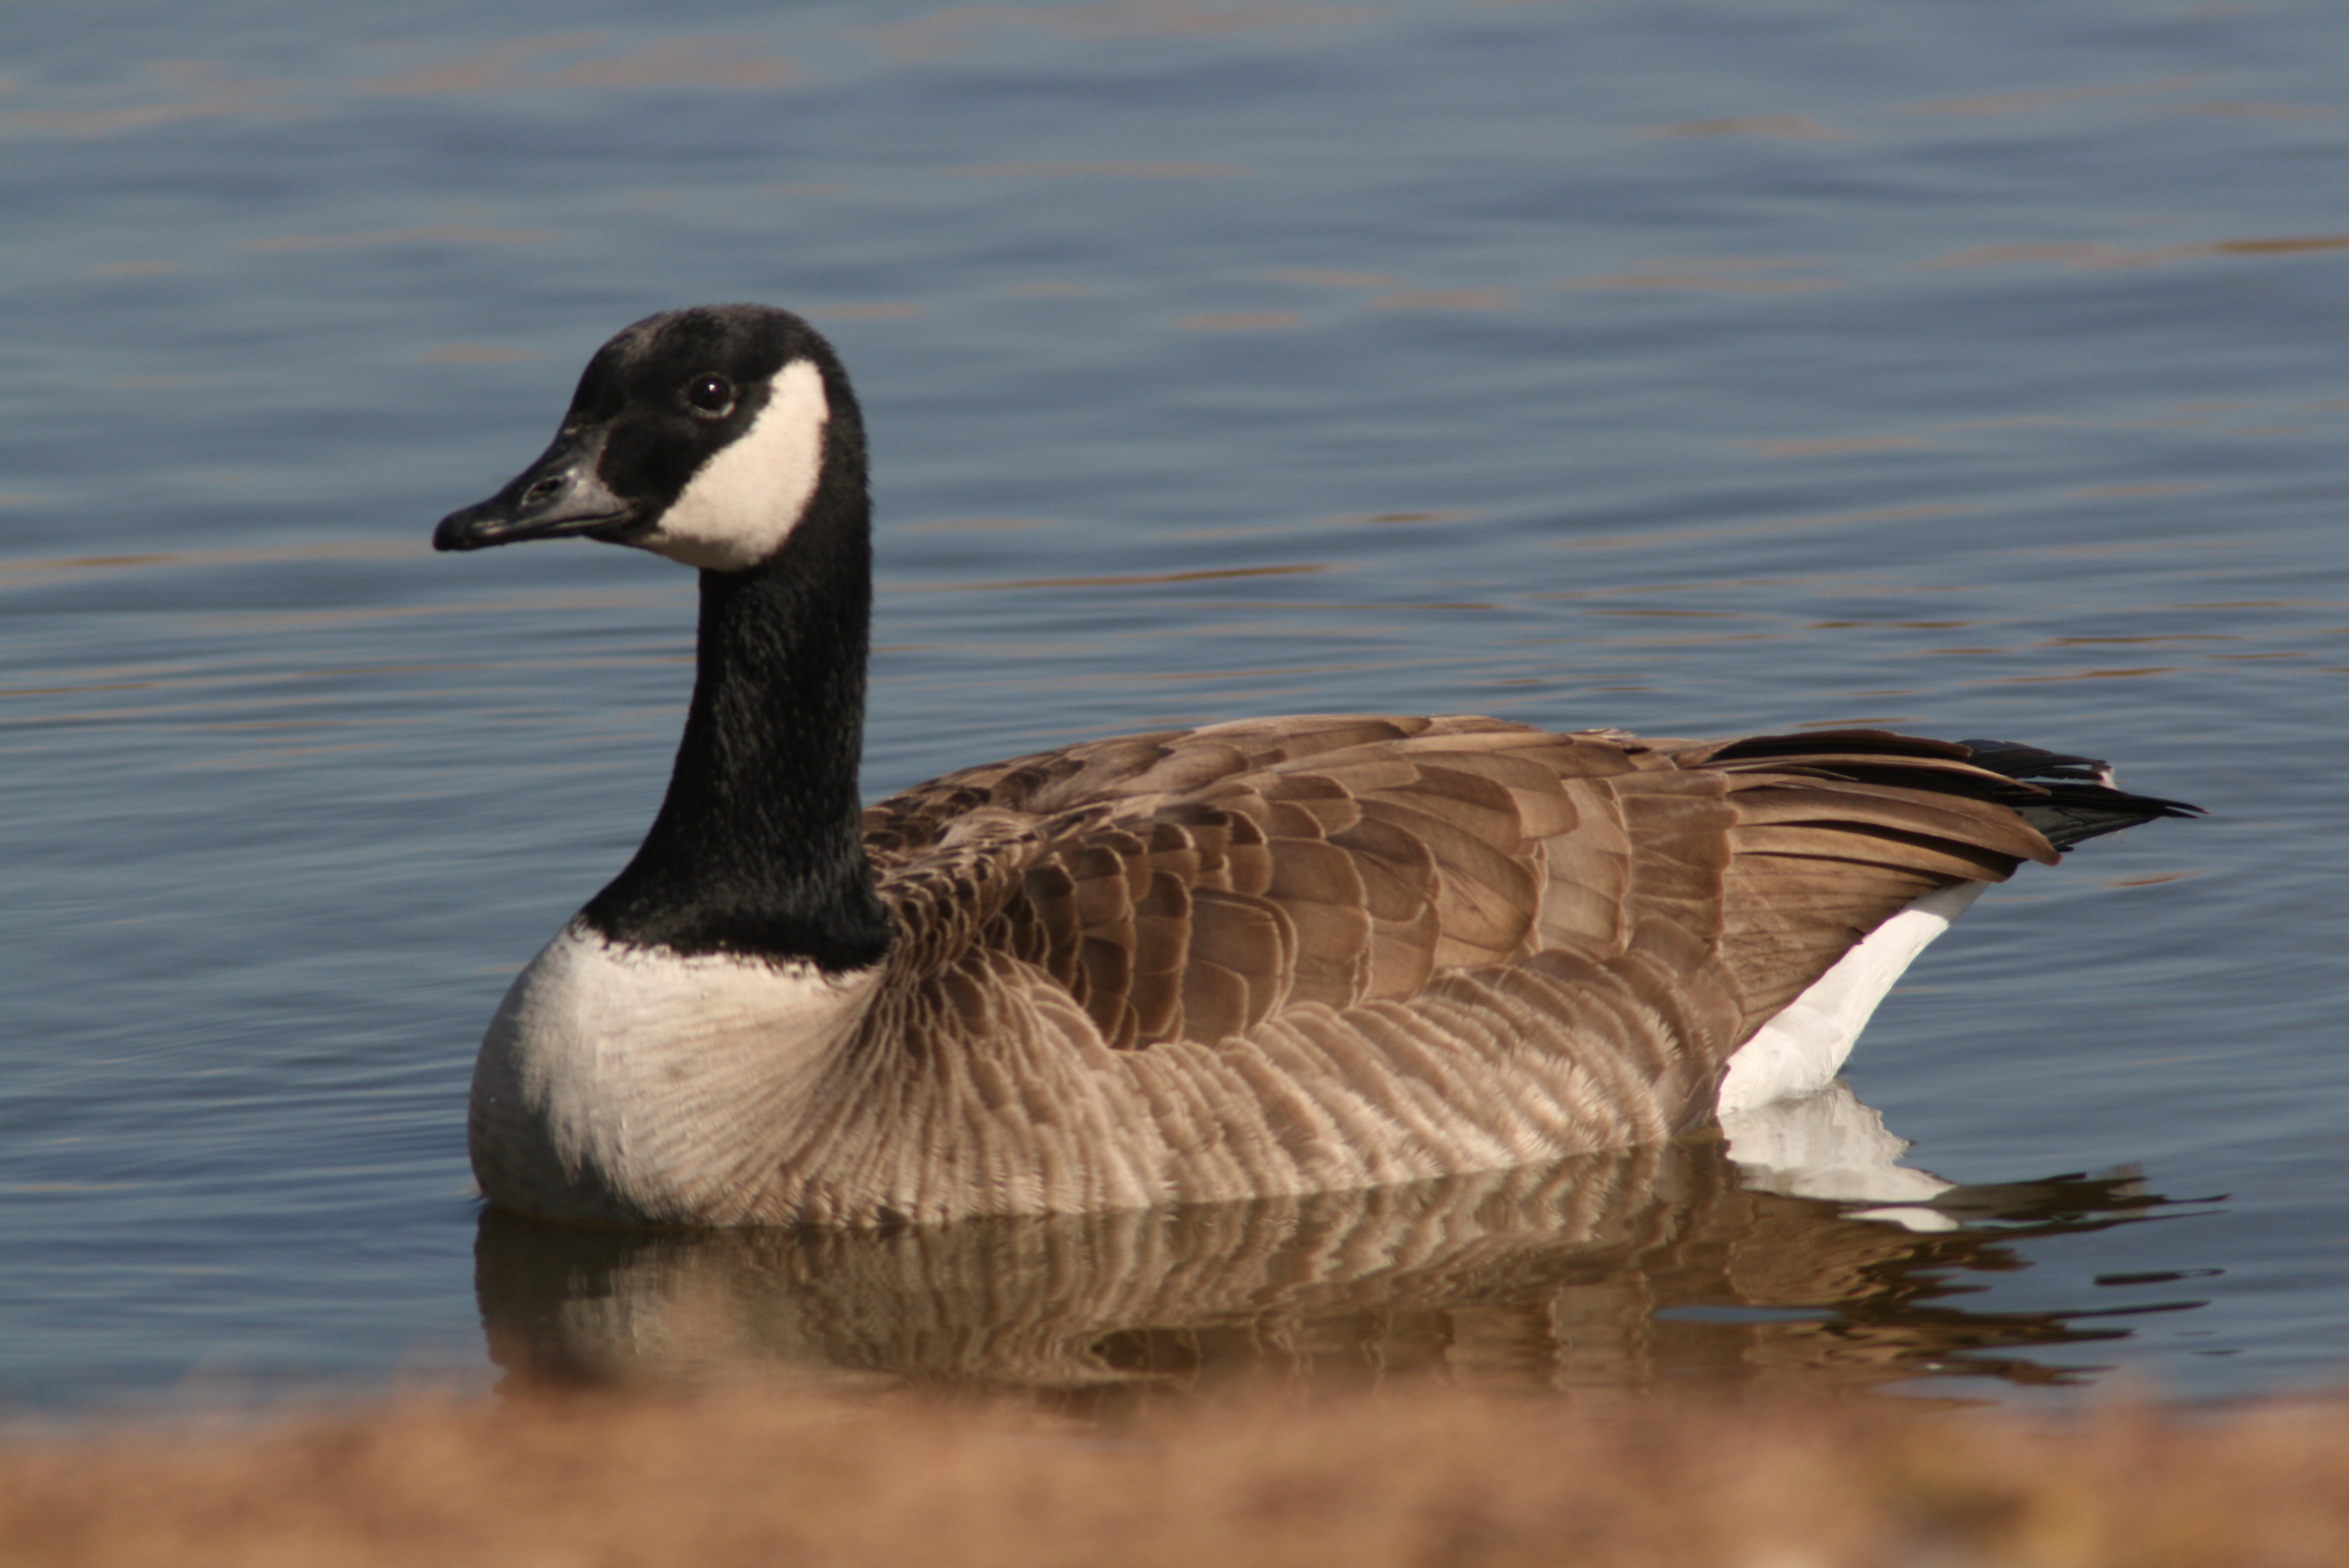 Canada Goose Bird On The Water - HD Wallpaper